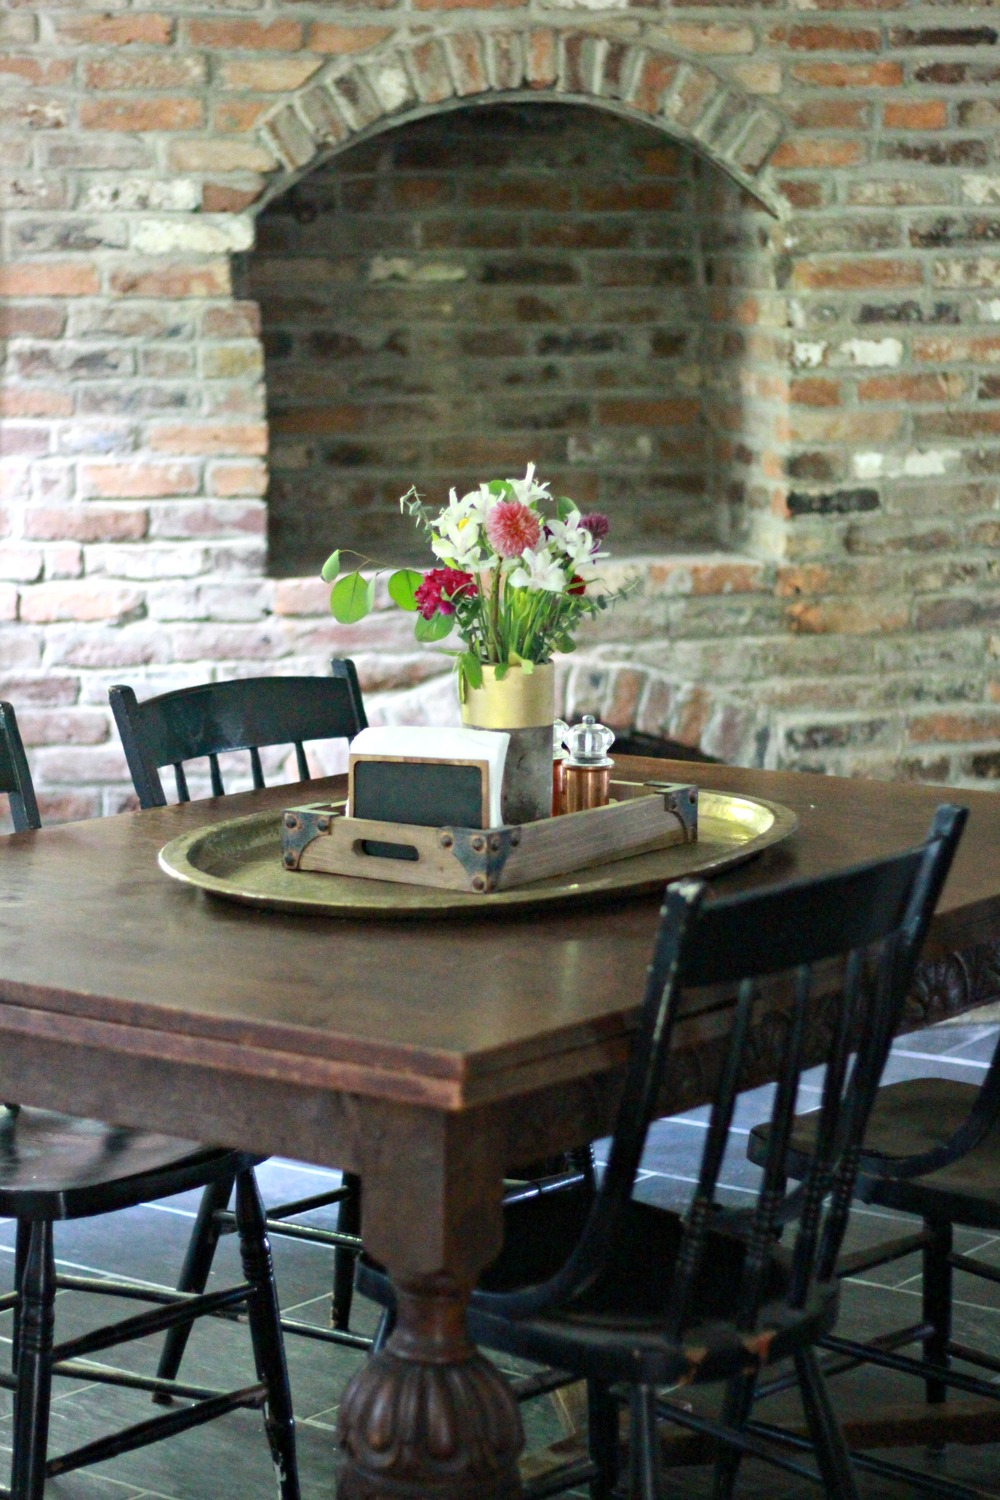 Fixer upper kitchen table - If I M Being Honest This Whole Renovation Adventure Started With The Fireplace It Is What We Fell In Love With Before Even Seeing The House In Person And